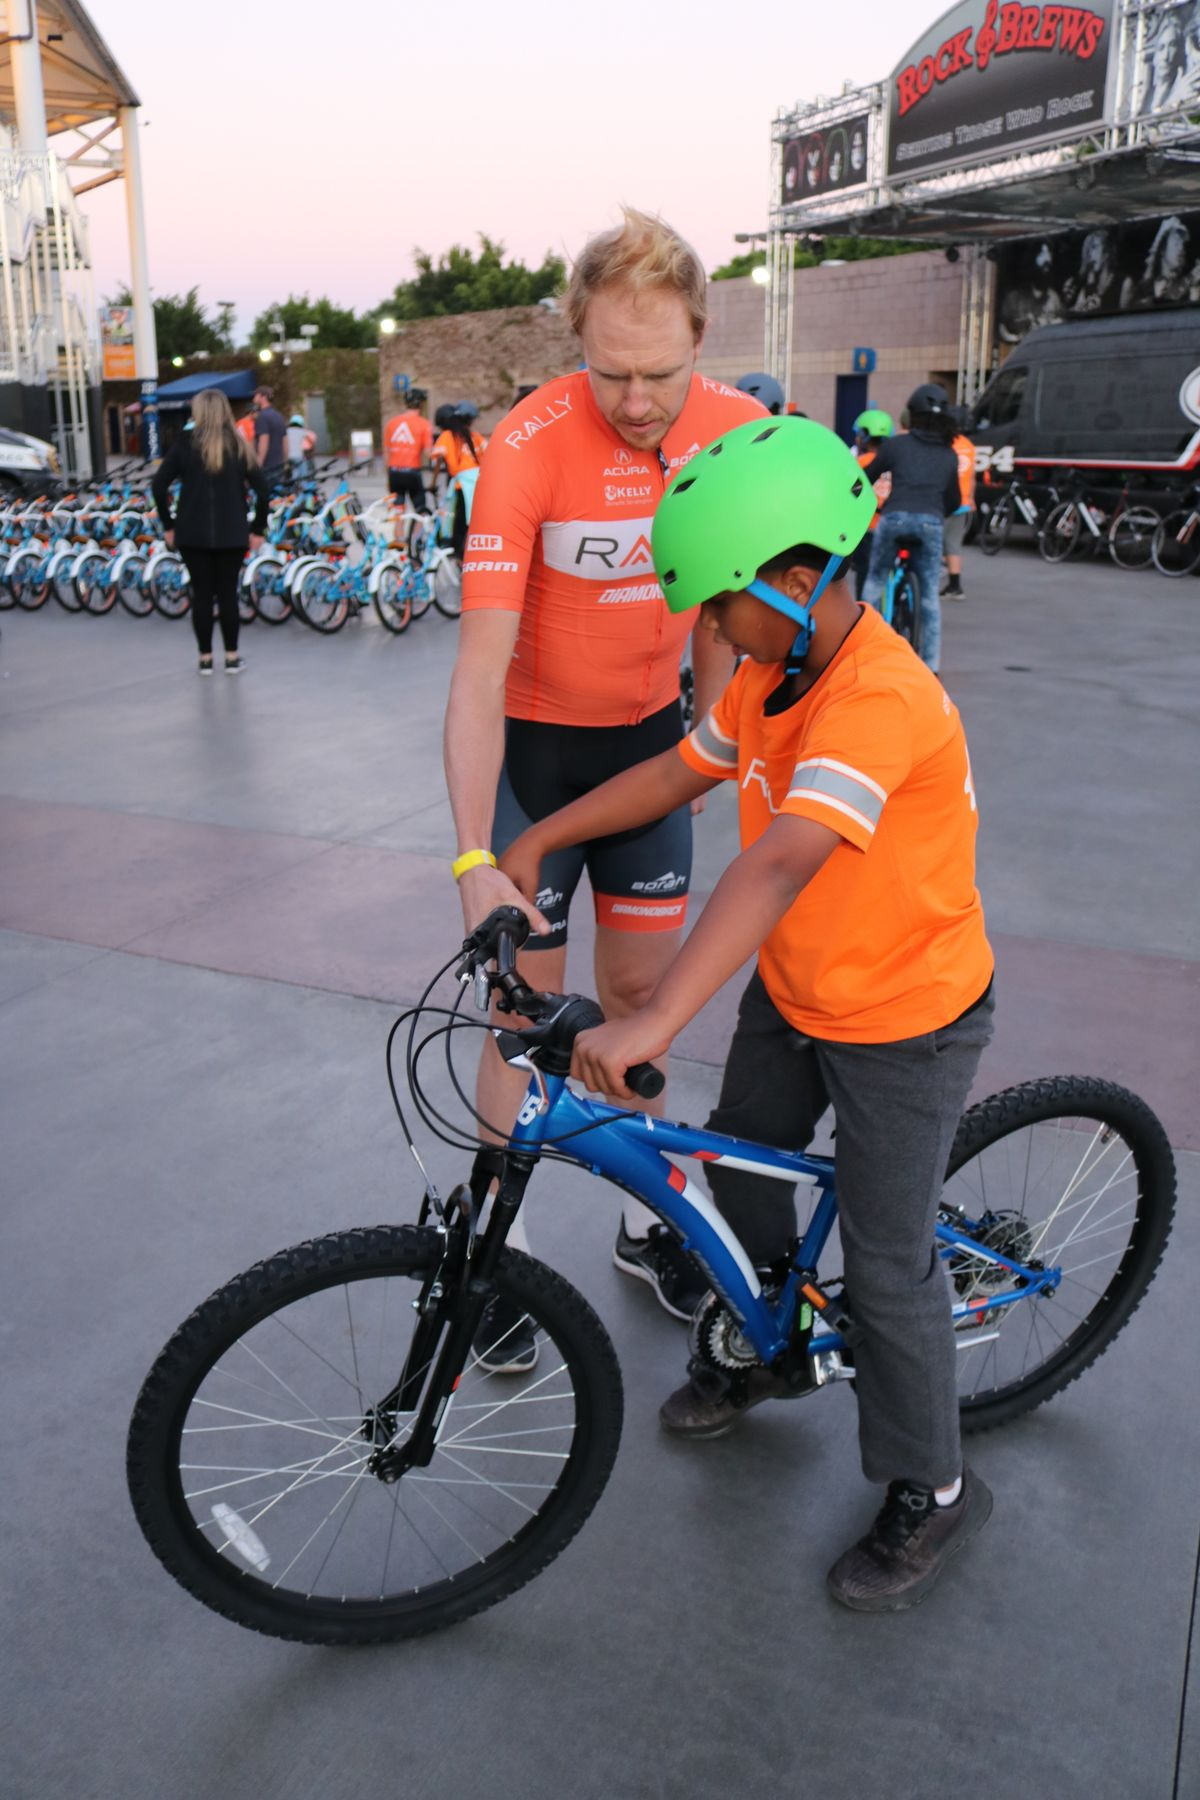 A professional rider from Rally CyclingSM fits boy from the Boys & Girls Club of Carson for a bike at Rally Health's Holiday Bike Build at StubHub Center on December 5, 2017.